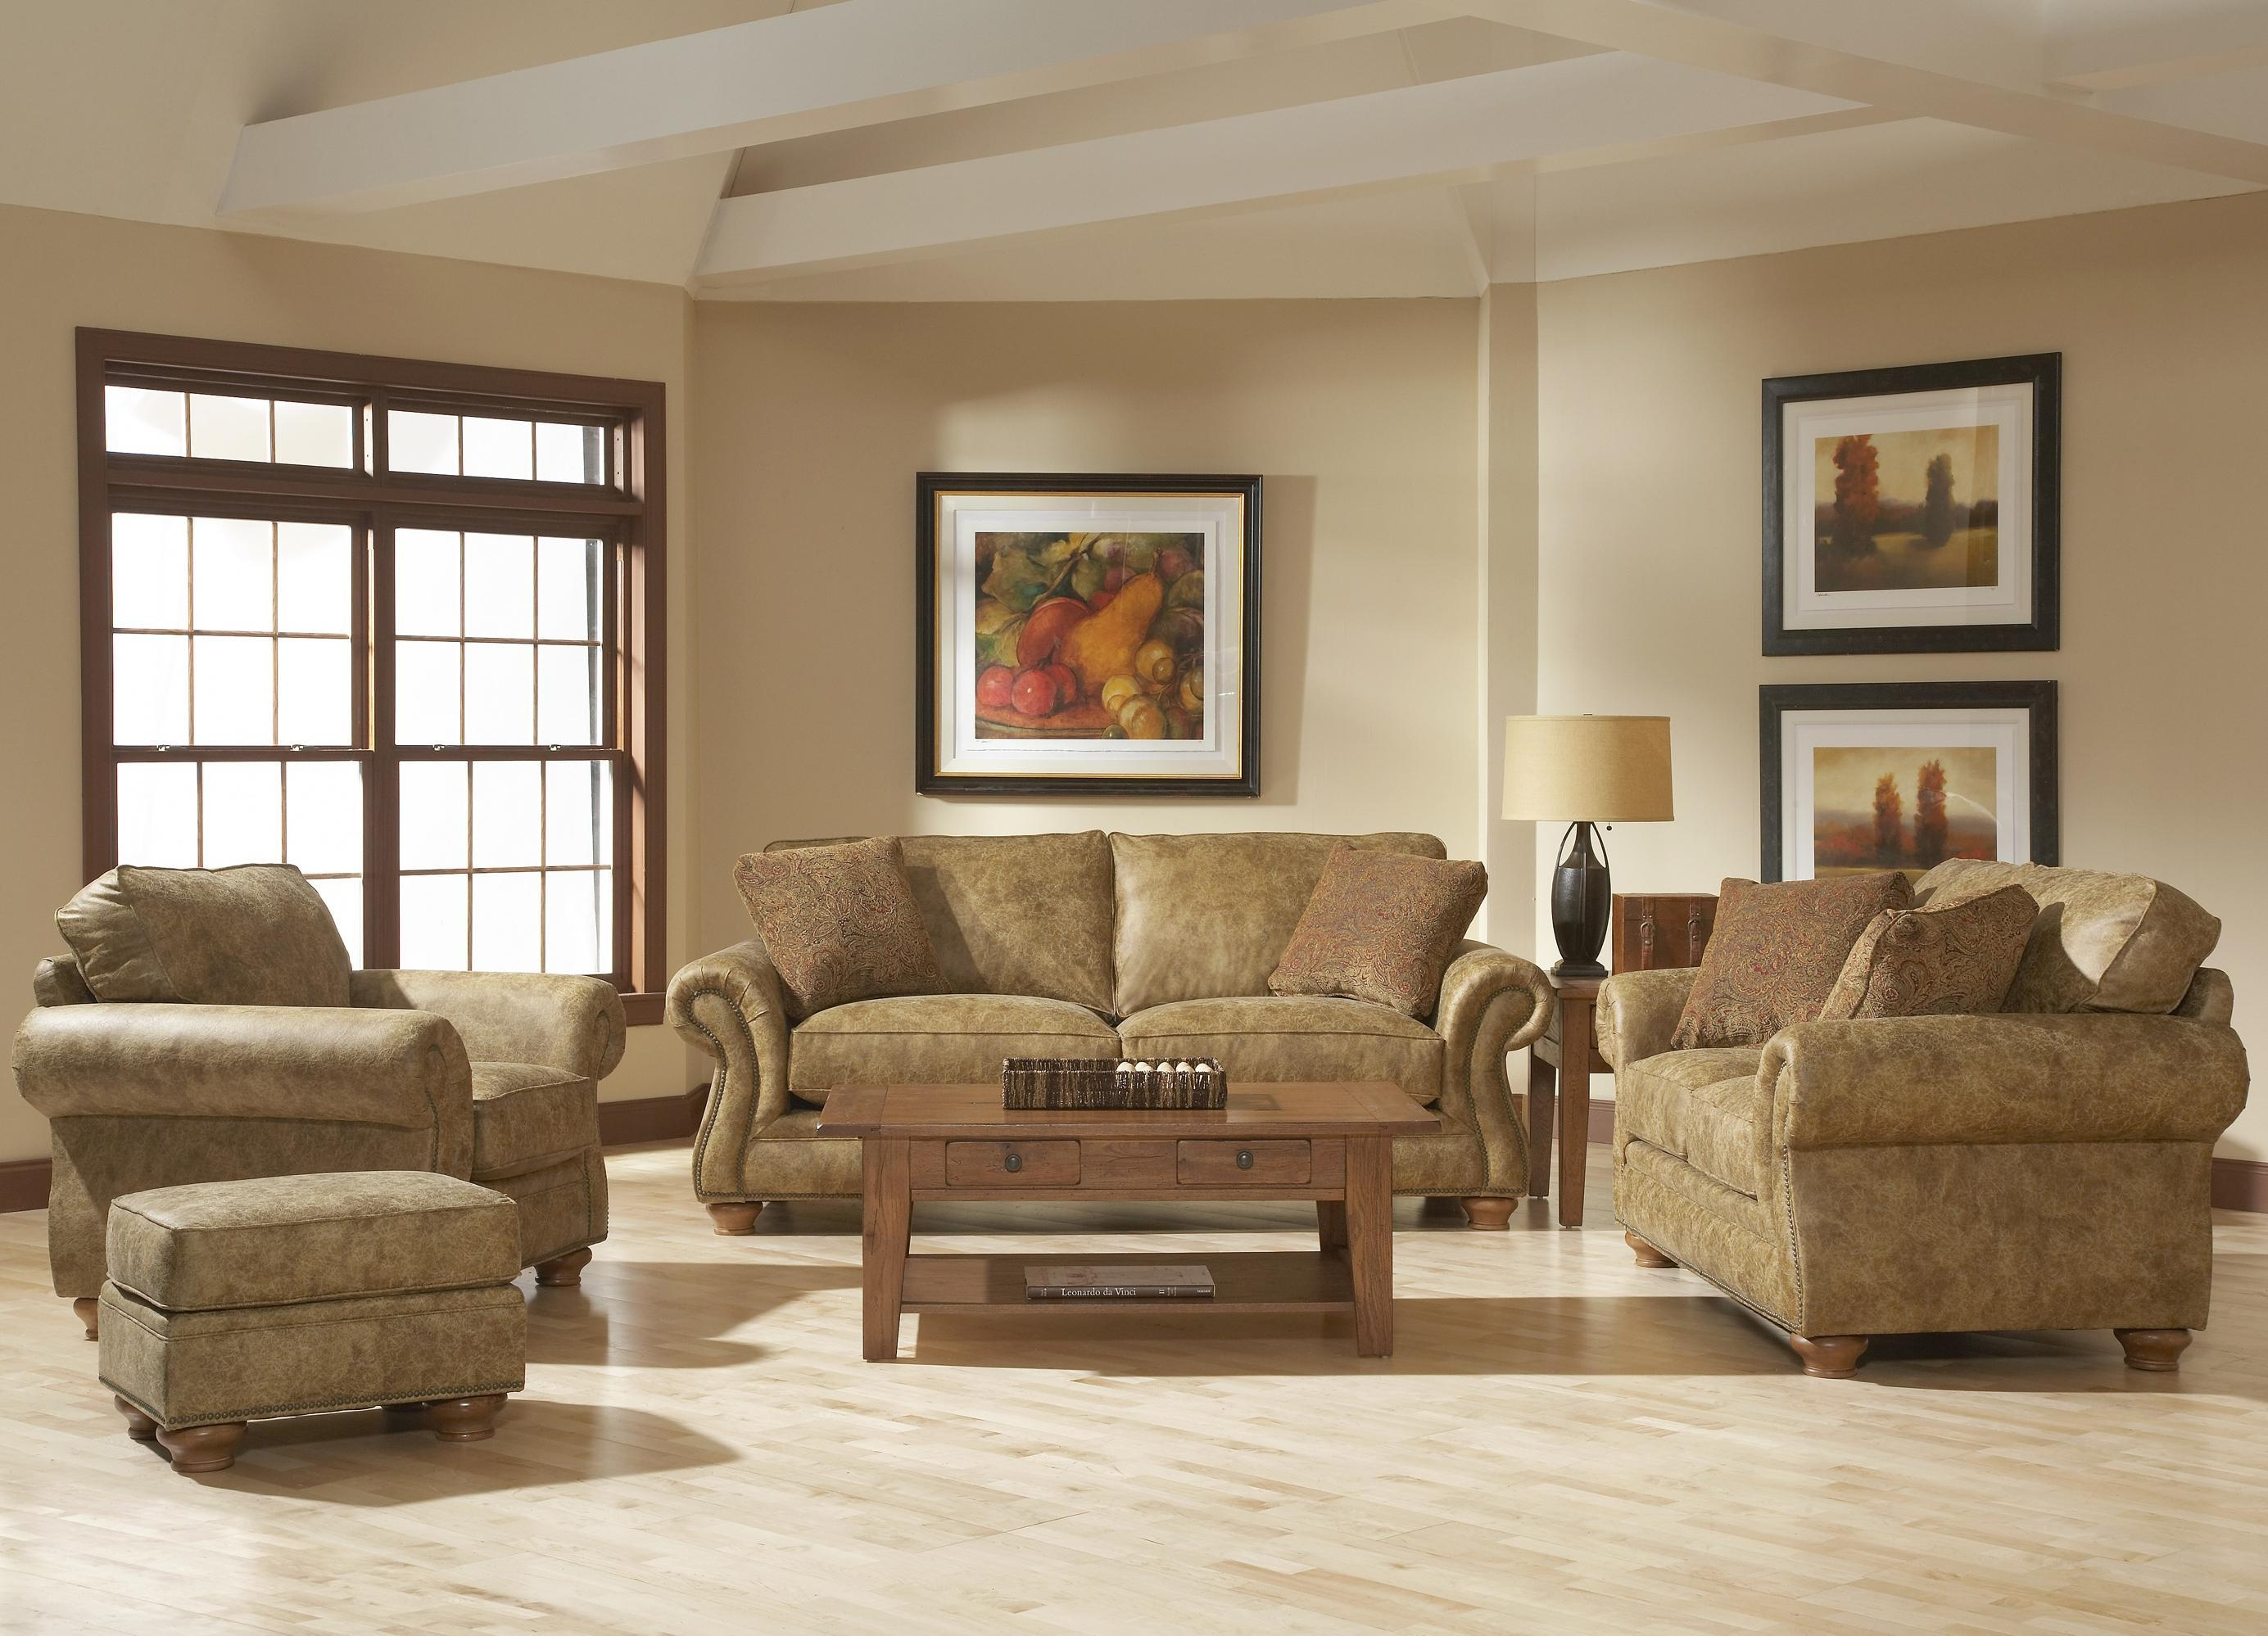 Broyhill Furniture Laramie 3 Piece Wedge Sectional Sofa – Wayside With Broyhill Sectional Sofa (View 15 of 15)